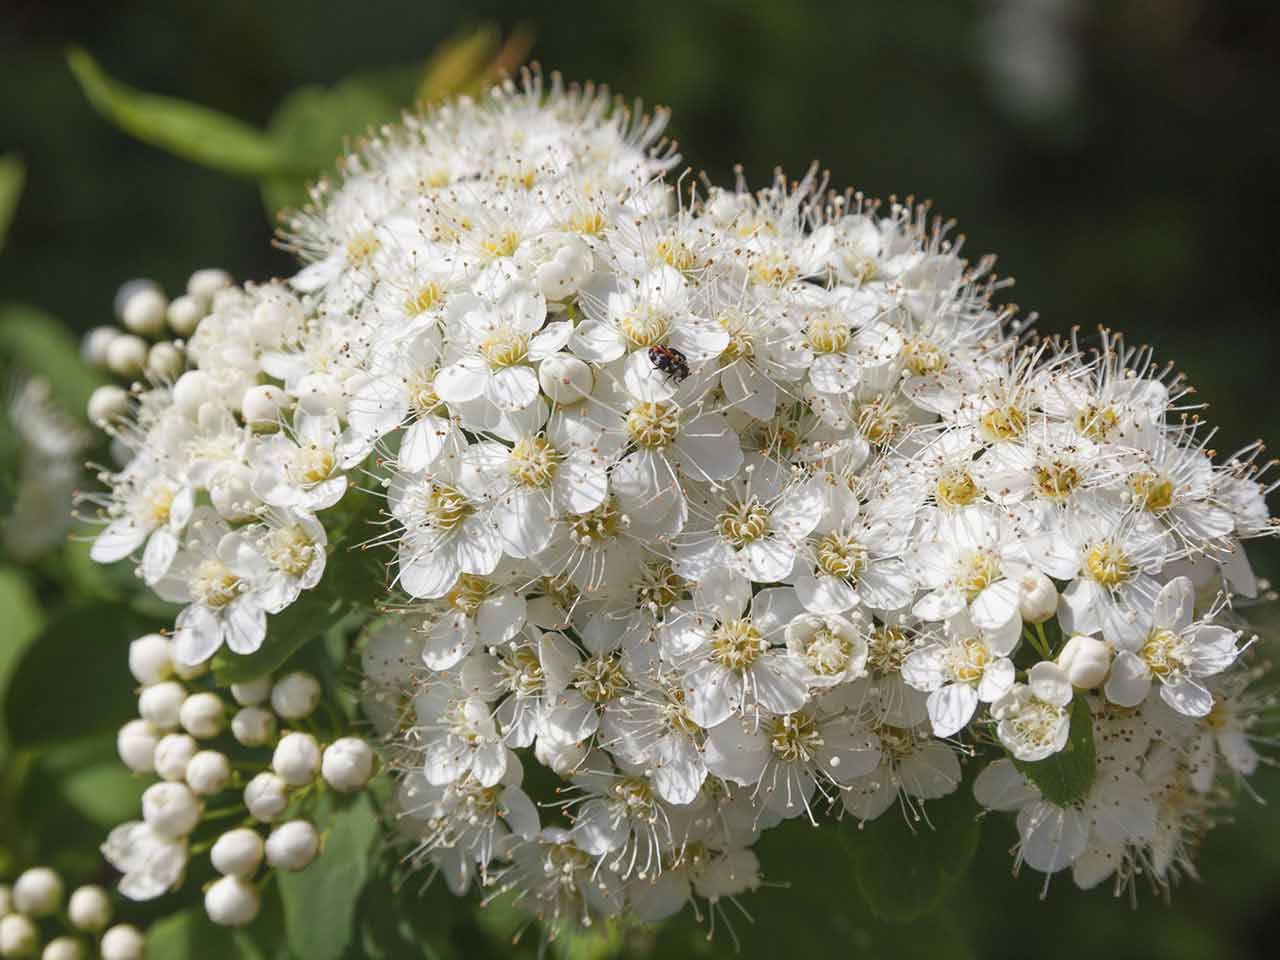 Flowering Shrubs: How to Choose, Plant and Grow Shrubs